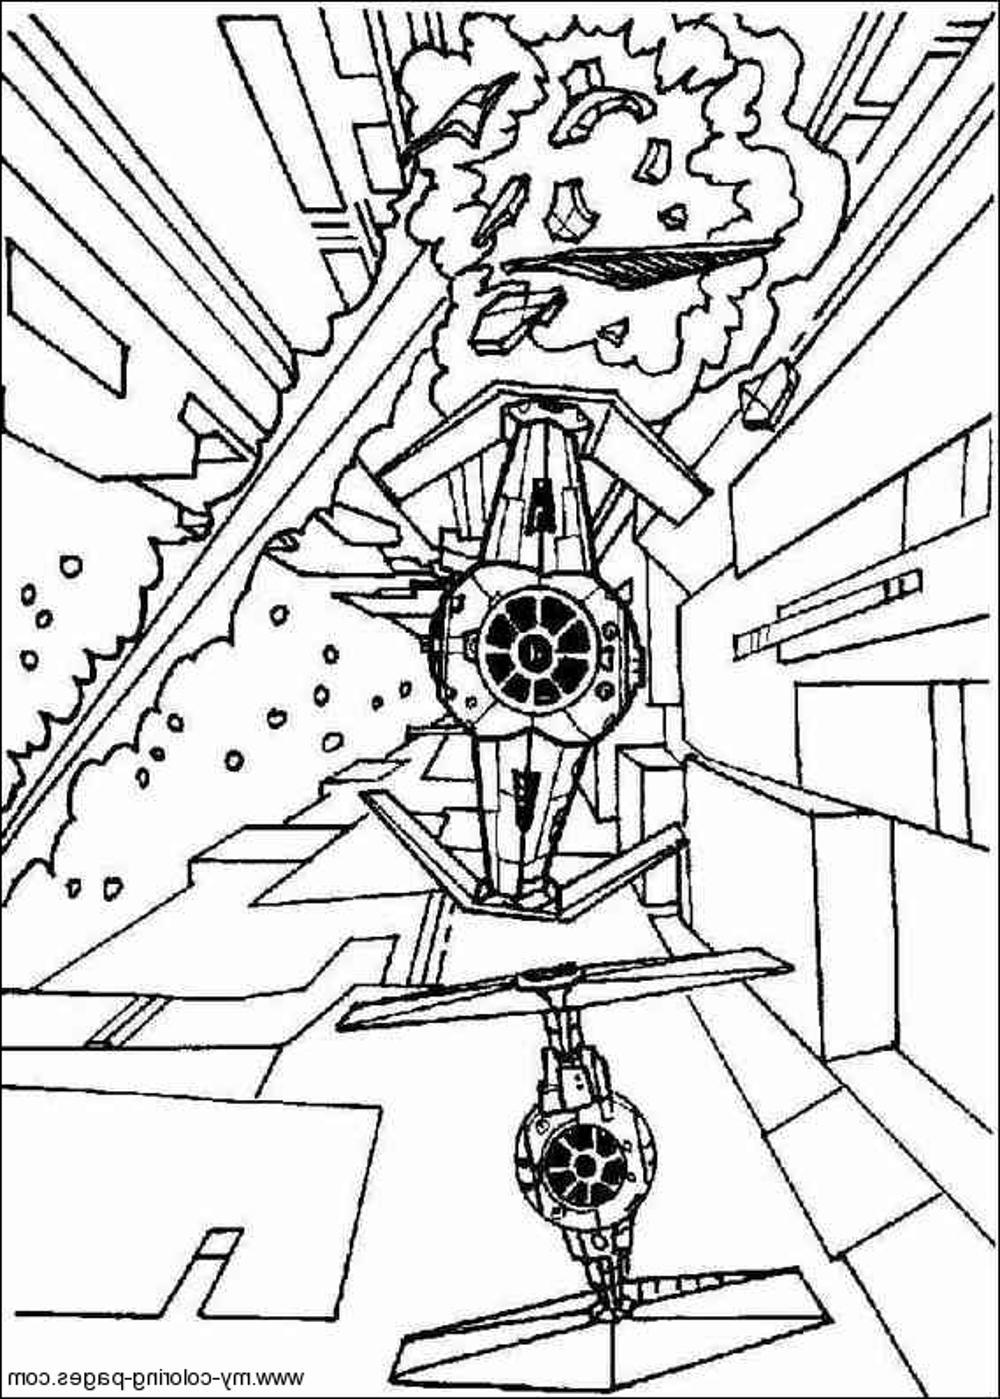 lego star wars coloring pages to print lego star wars luke skywalker coloring pages printable lego star coloring wars print pages to